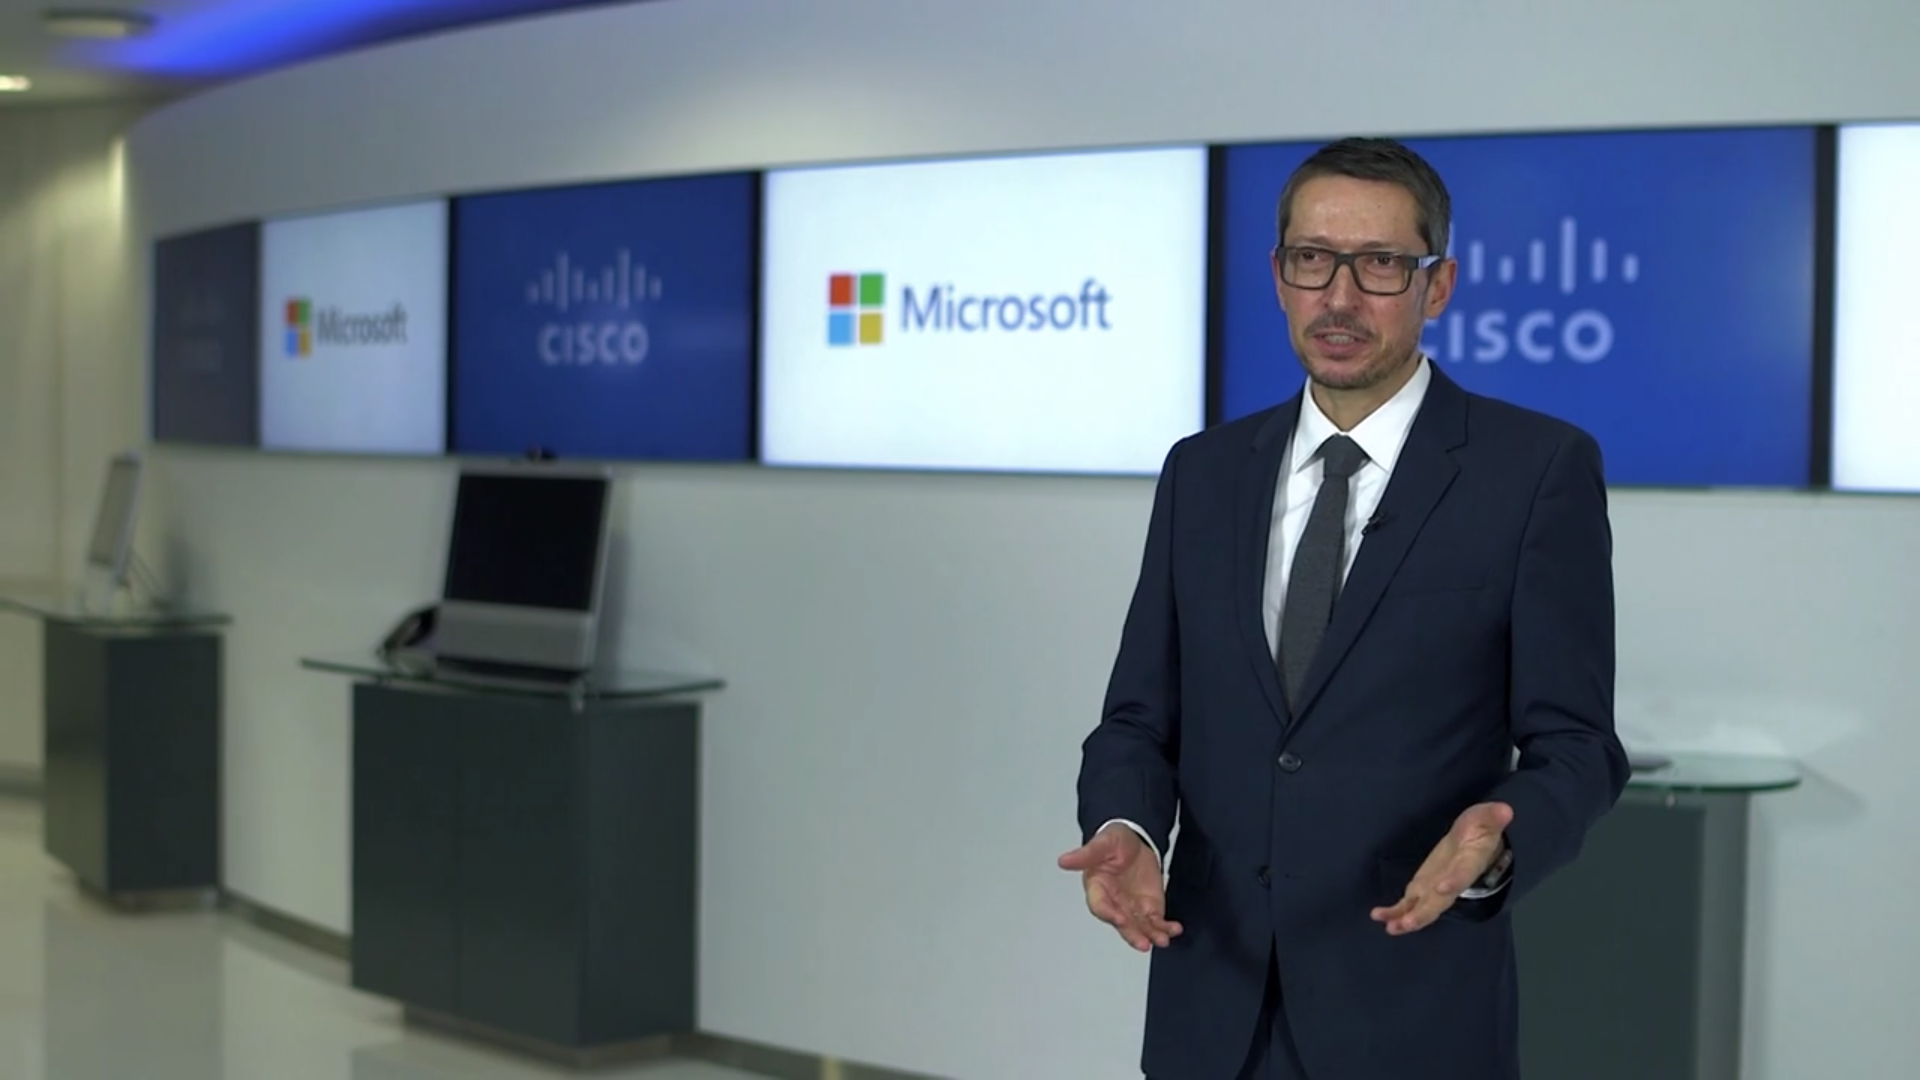 Microsoft and Cisco case study